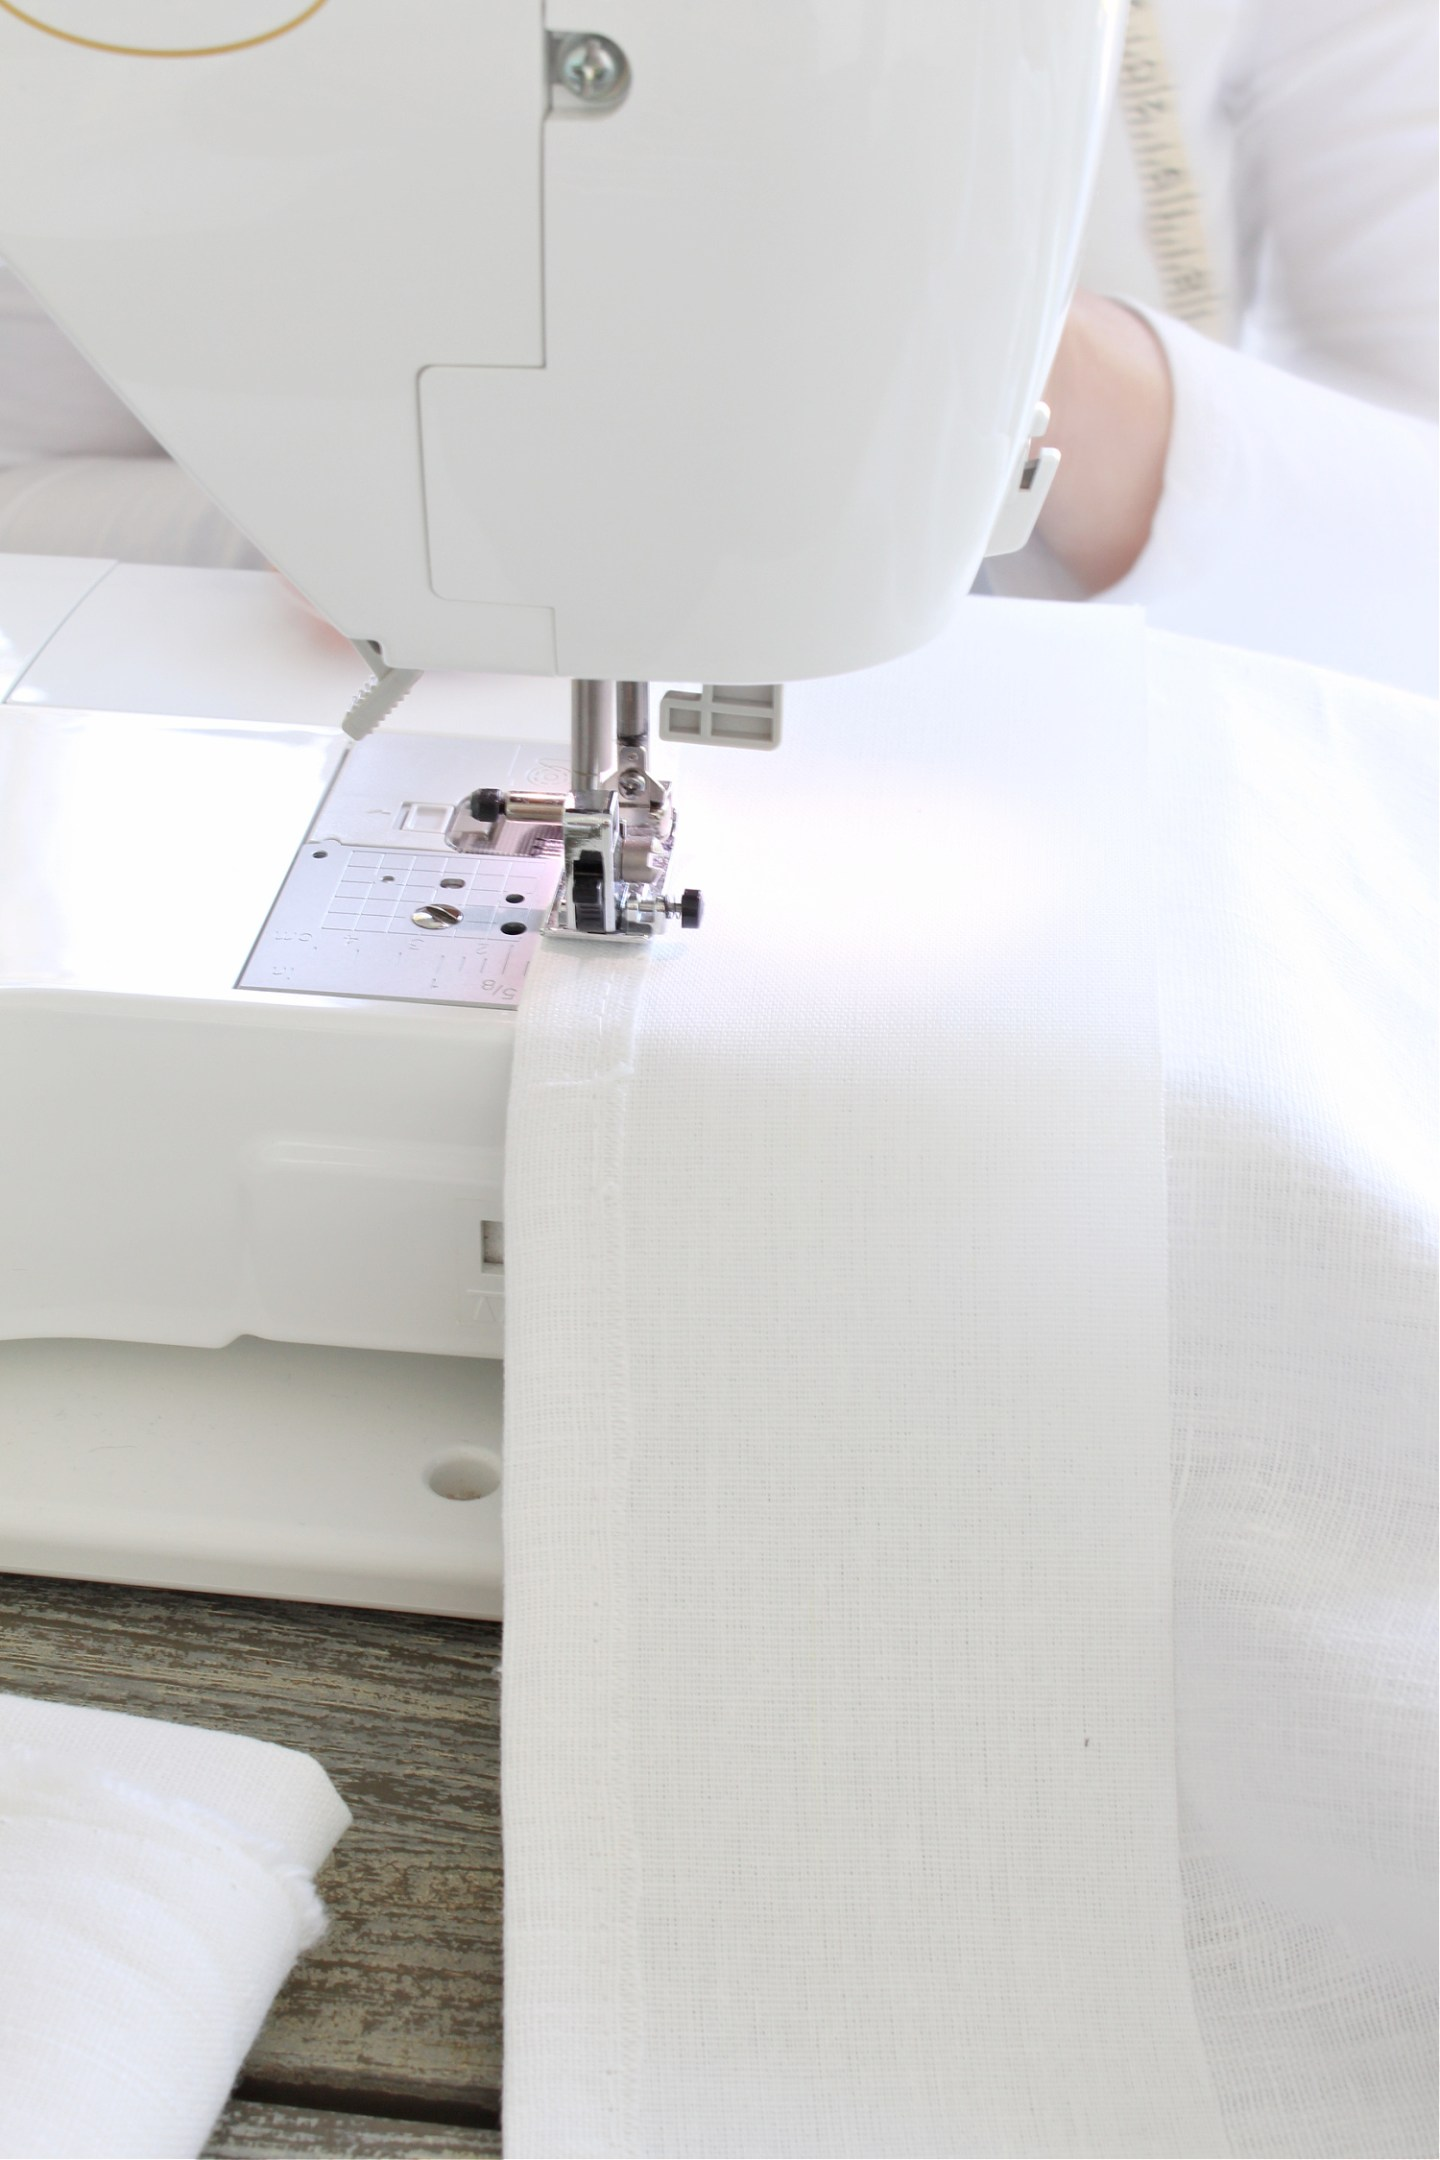 How to Use Buckram Tape